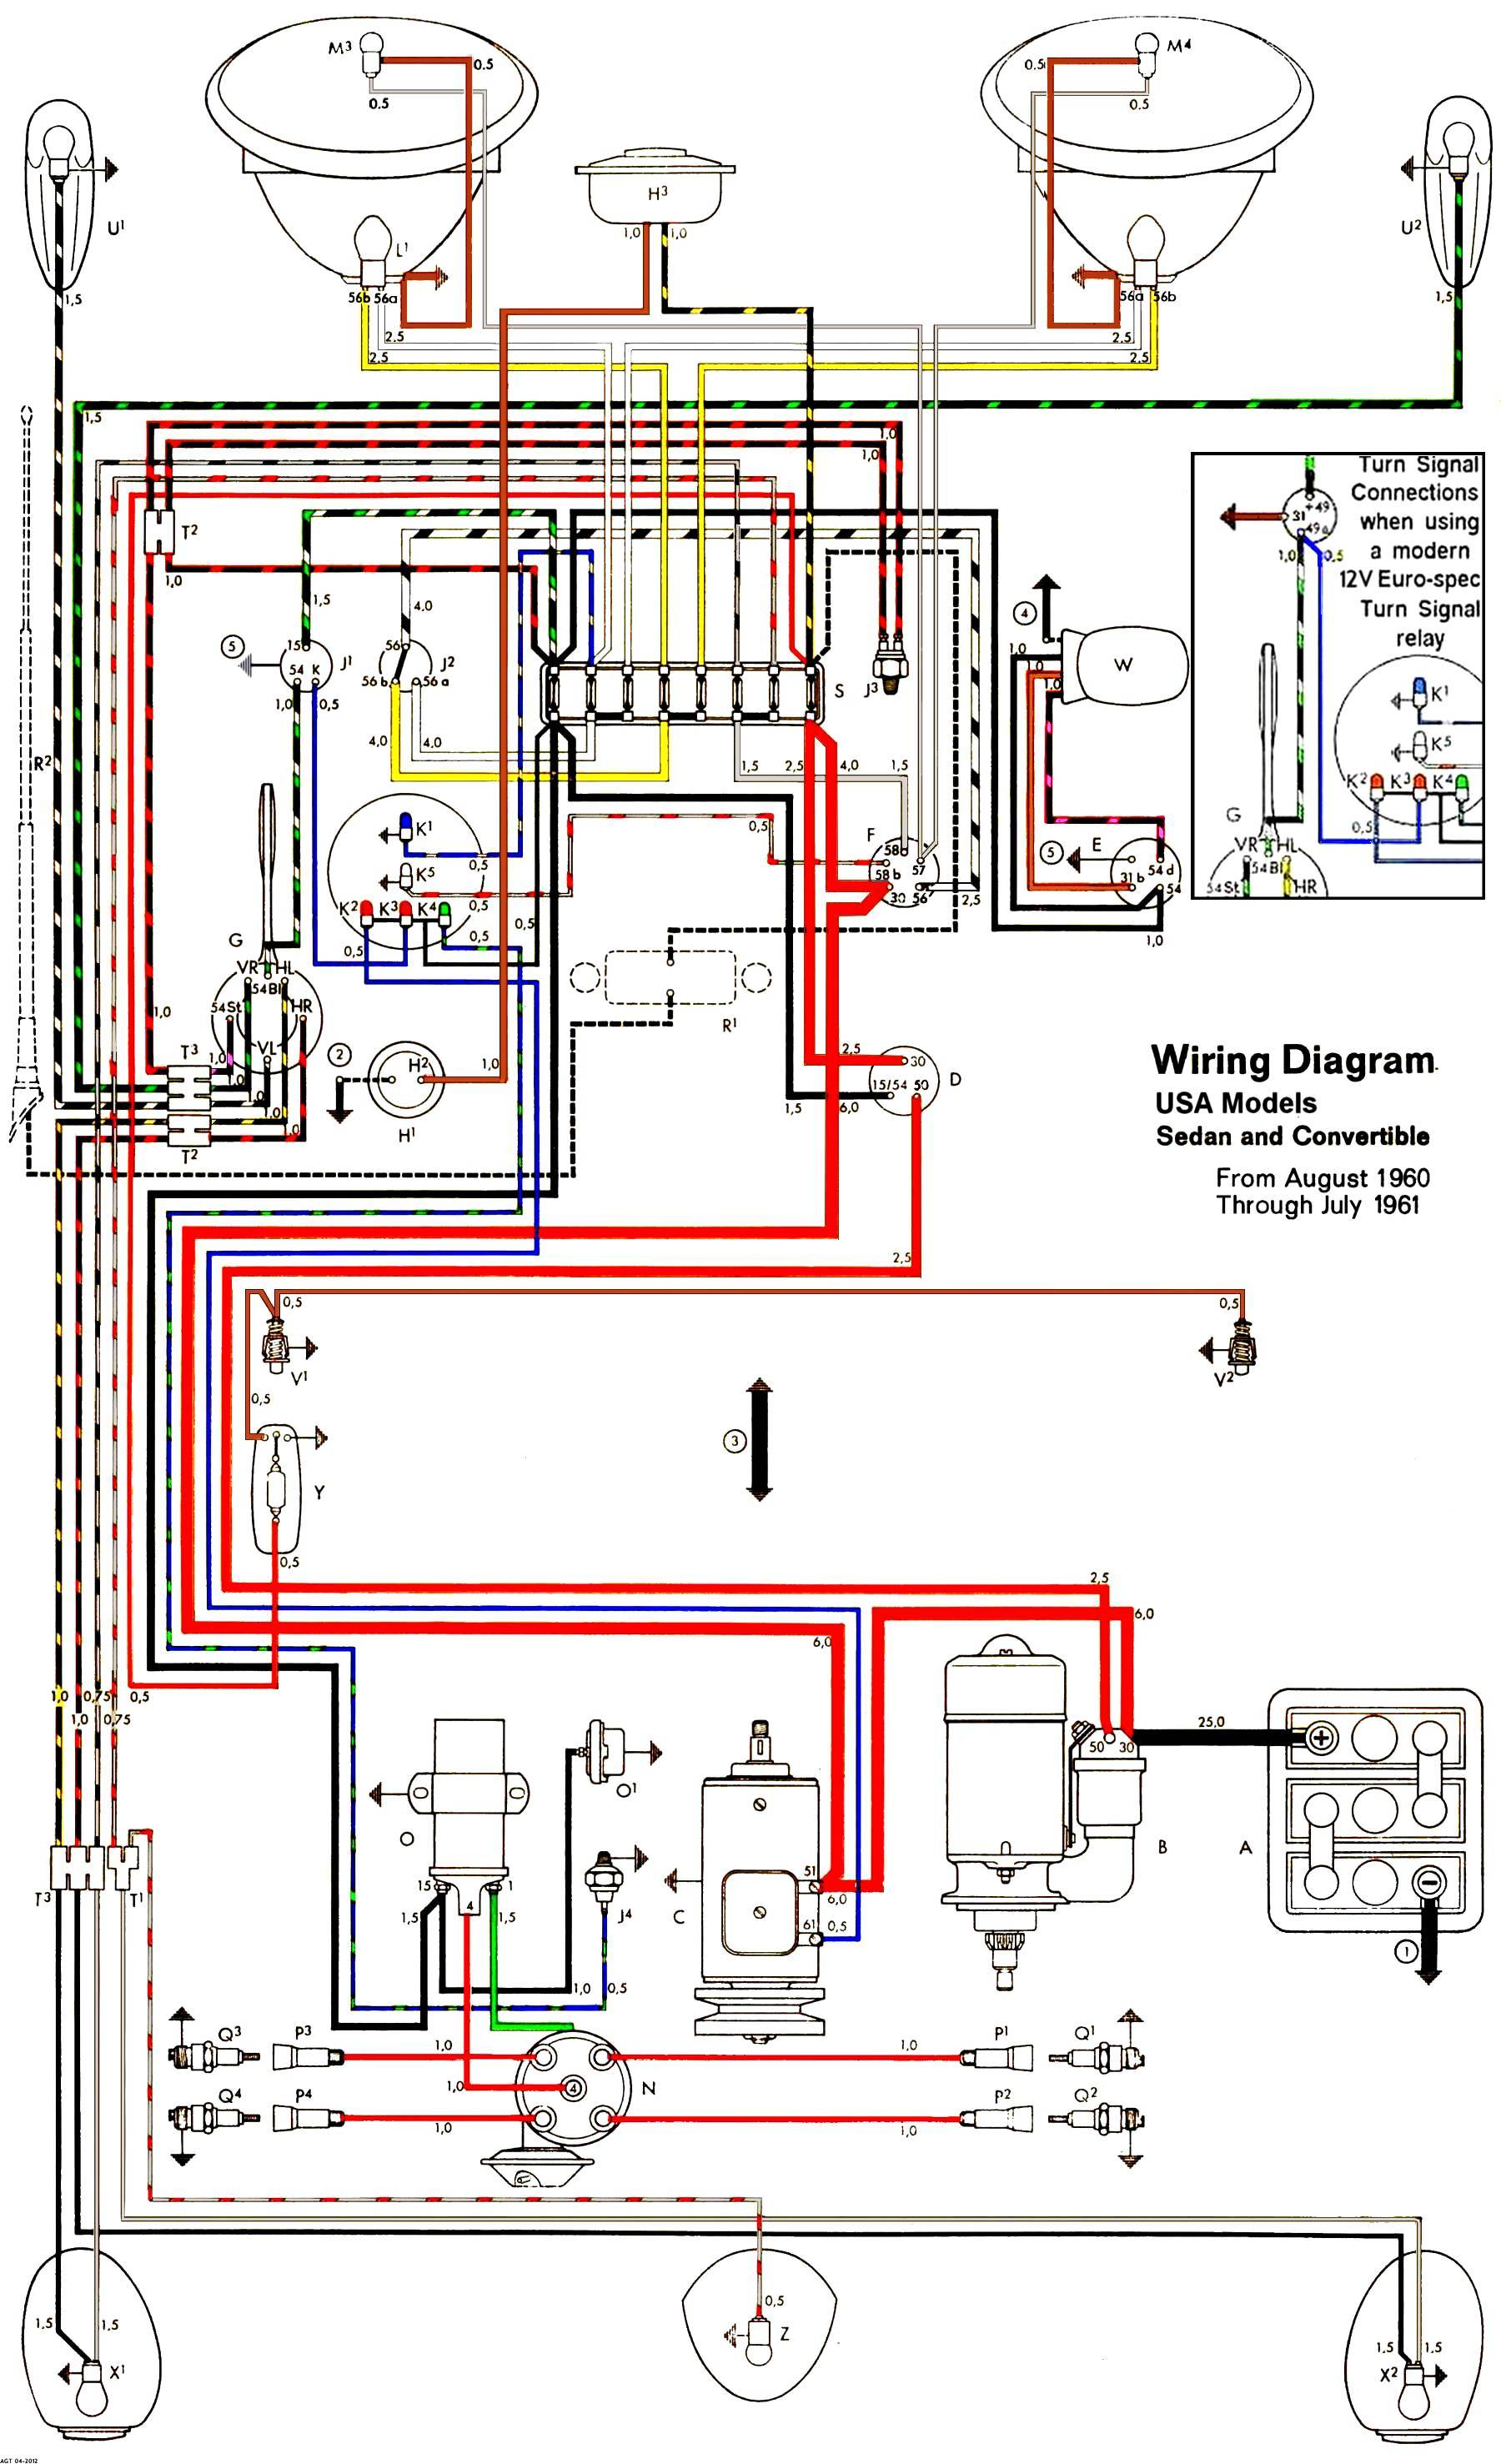 Vw Beetle Wiring Diagram Light - Trusted Wiring Diagrams •autoglas-stadtroda.de